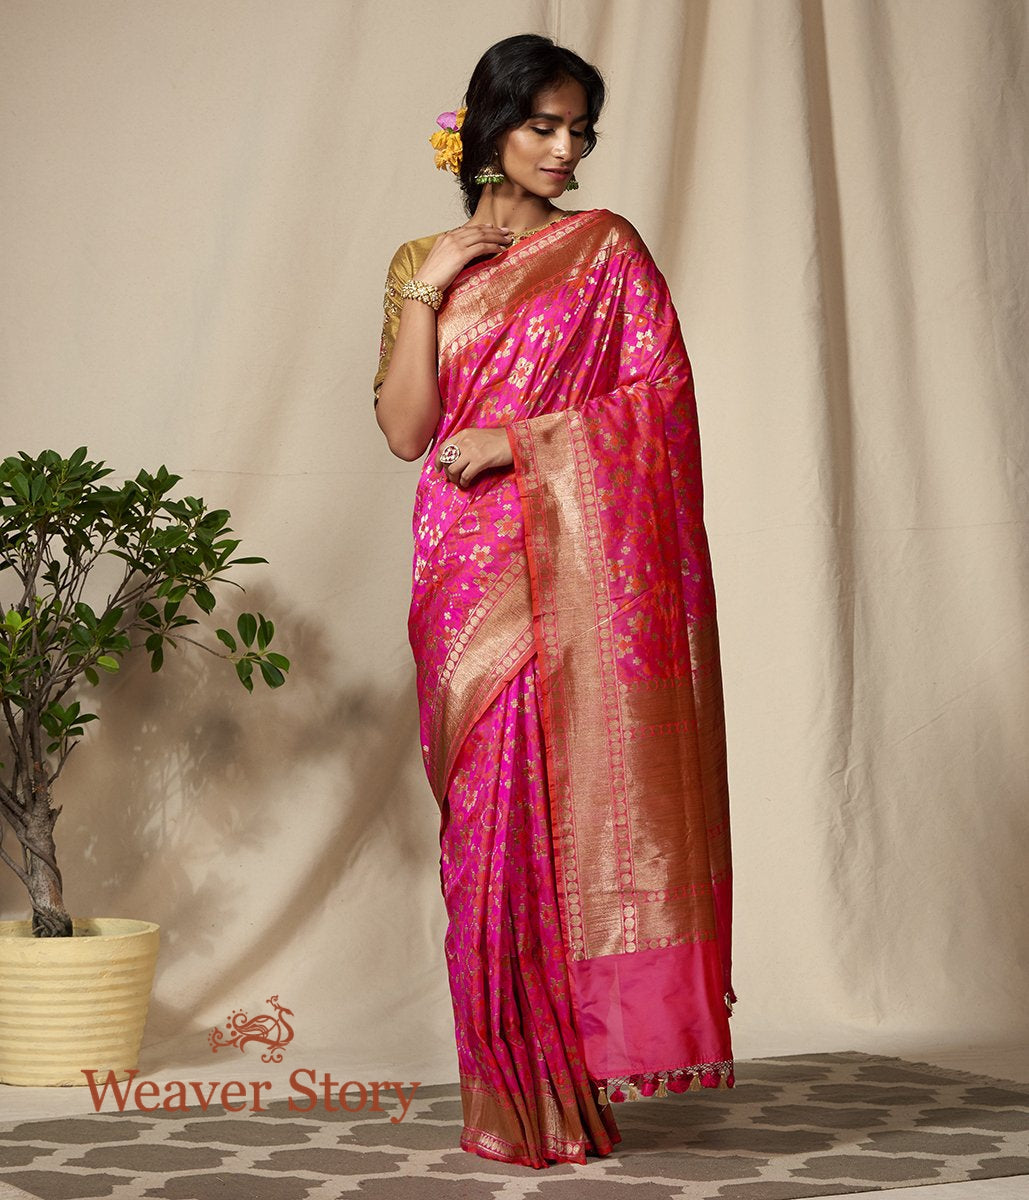 Handwoven Pink and Orange Dual Tone Antique Zari Banarasi Patola Saree